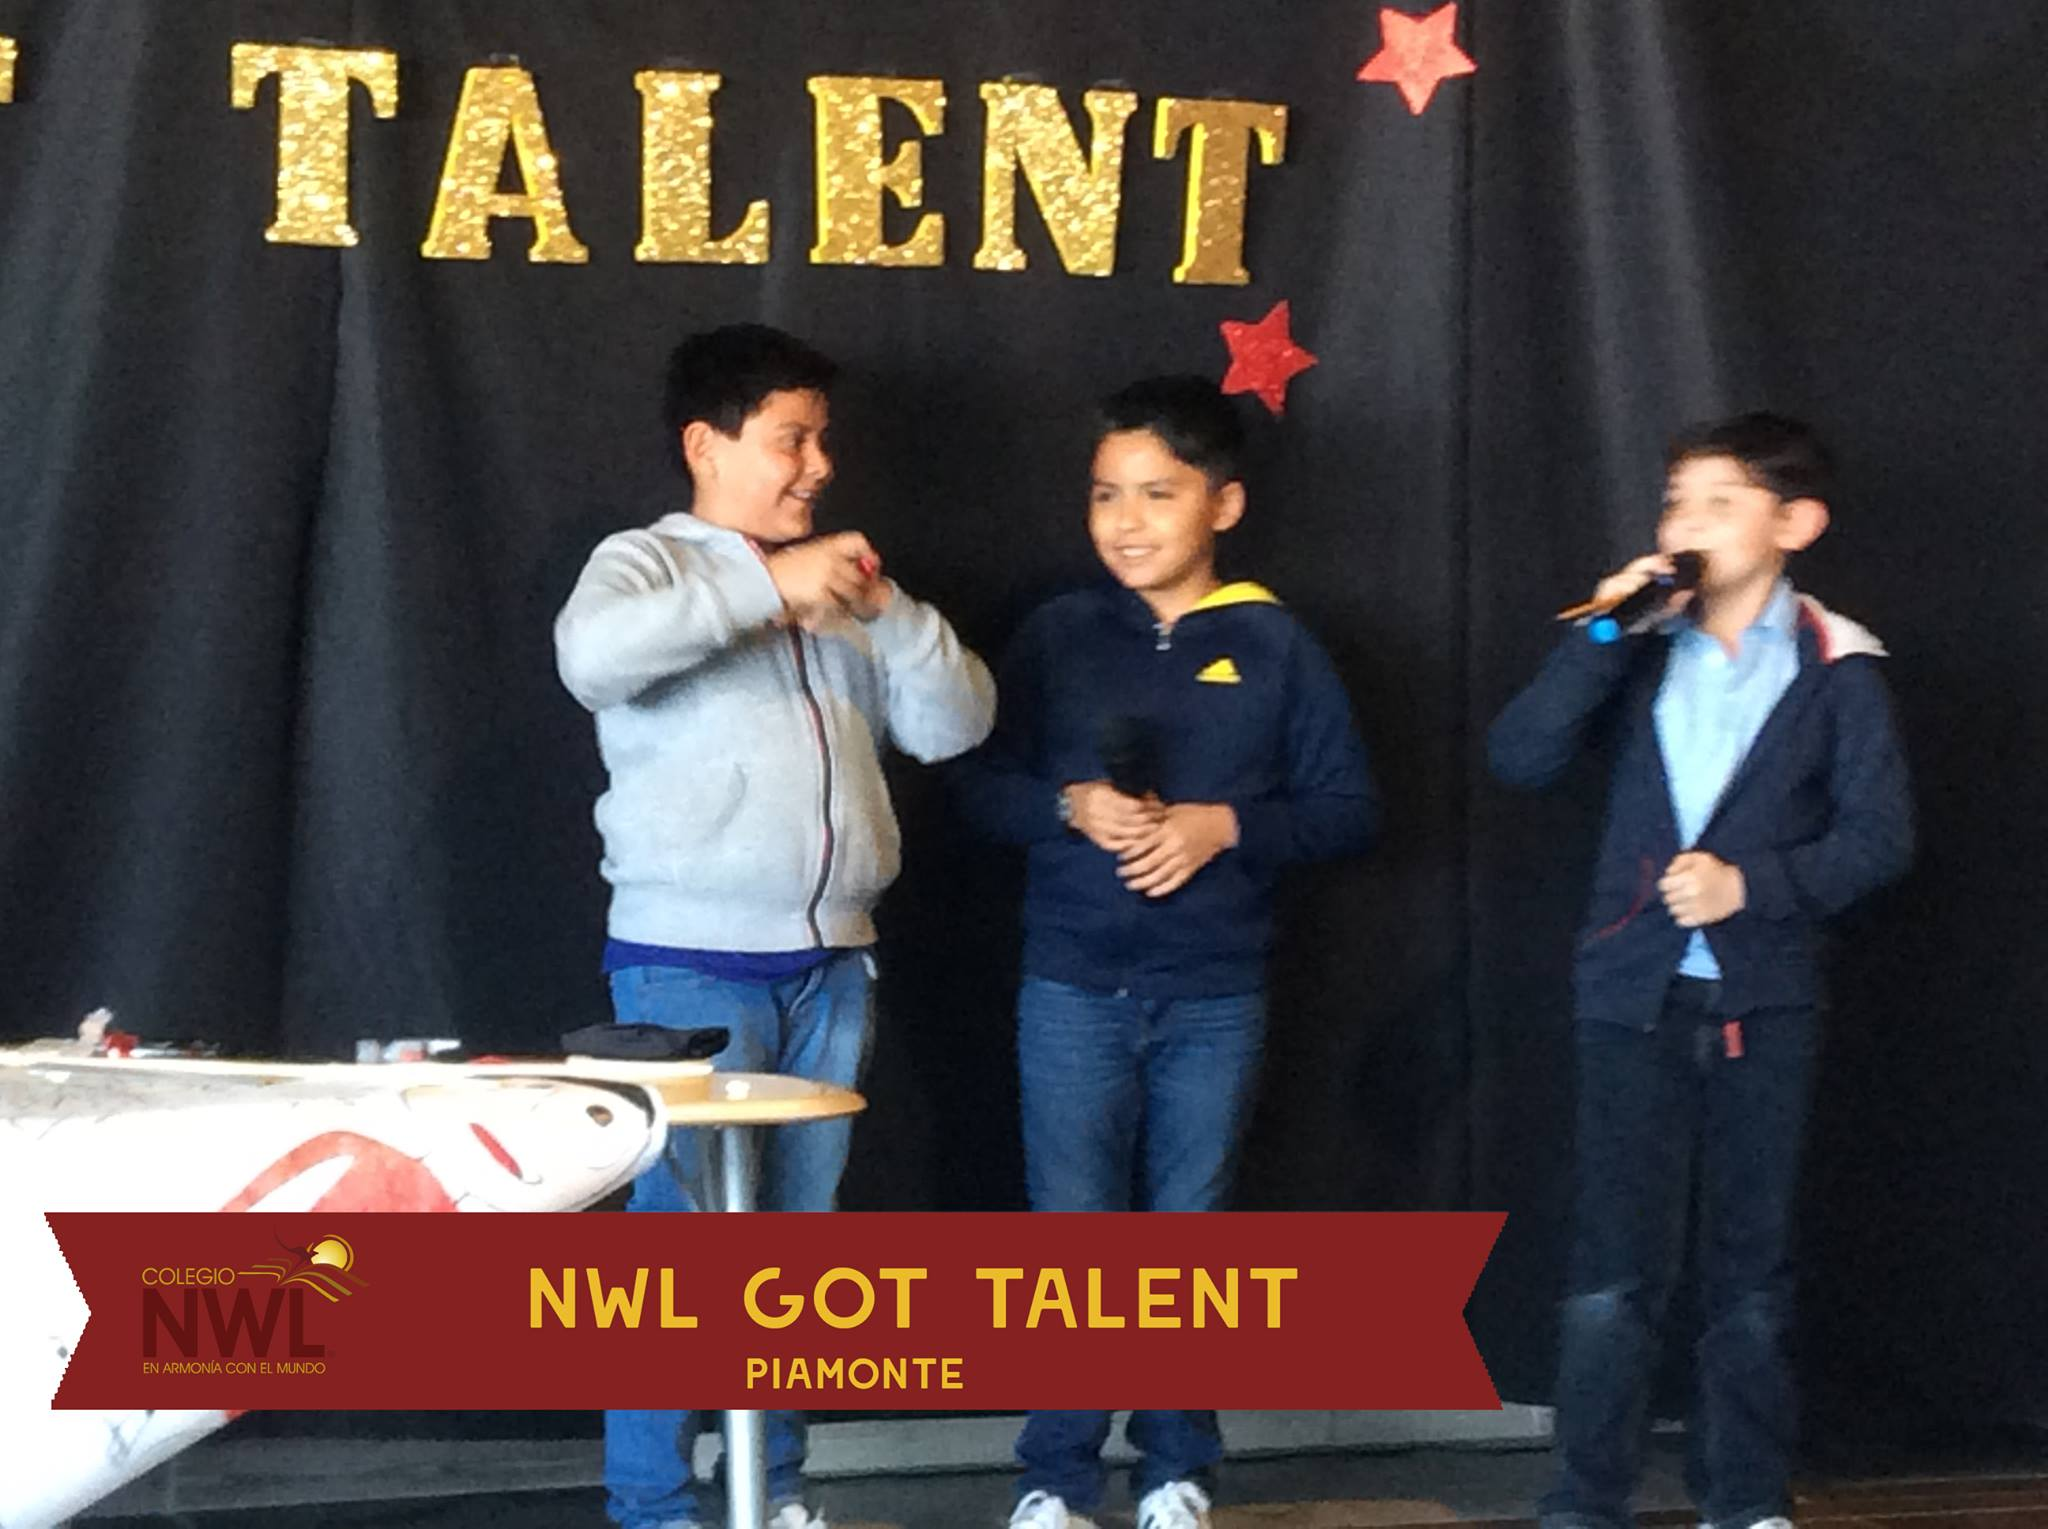 NWL Got Talent